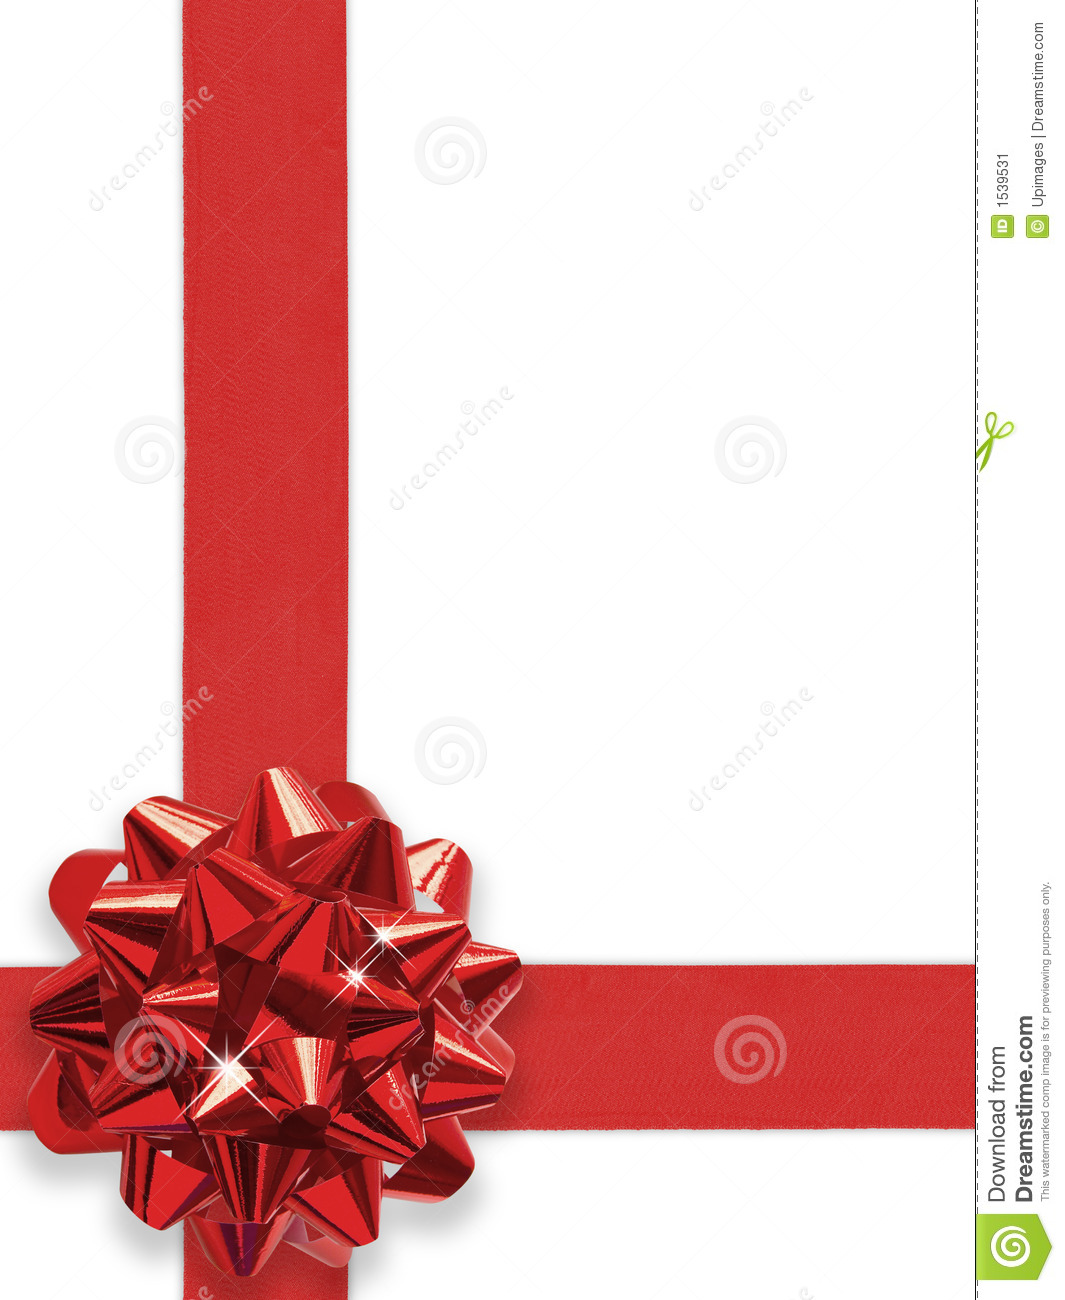 Red gift bows border with clipping path for easy background removing - Background Bow Clipping Path Red